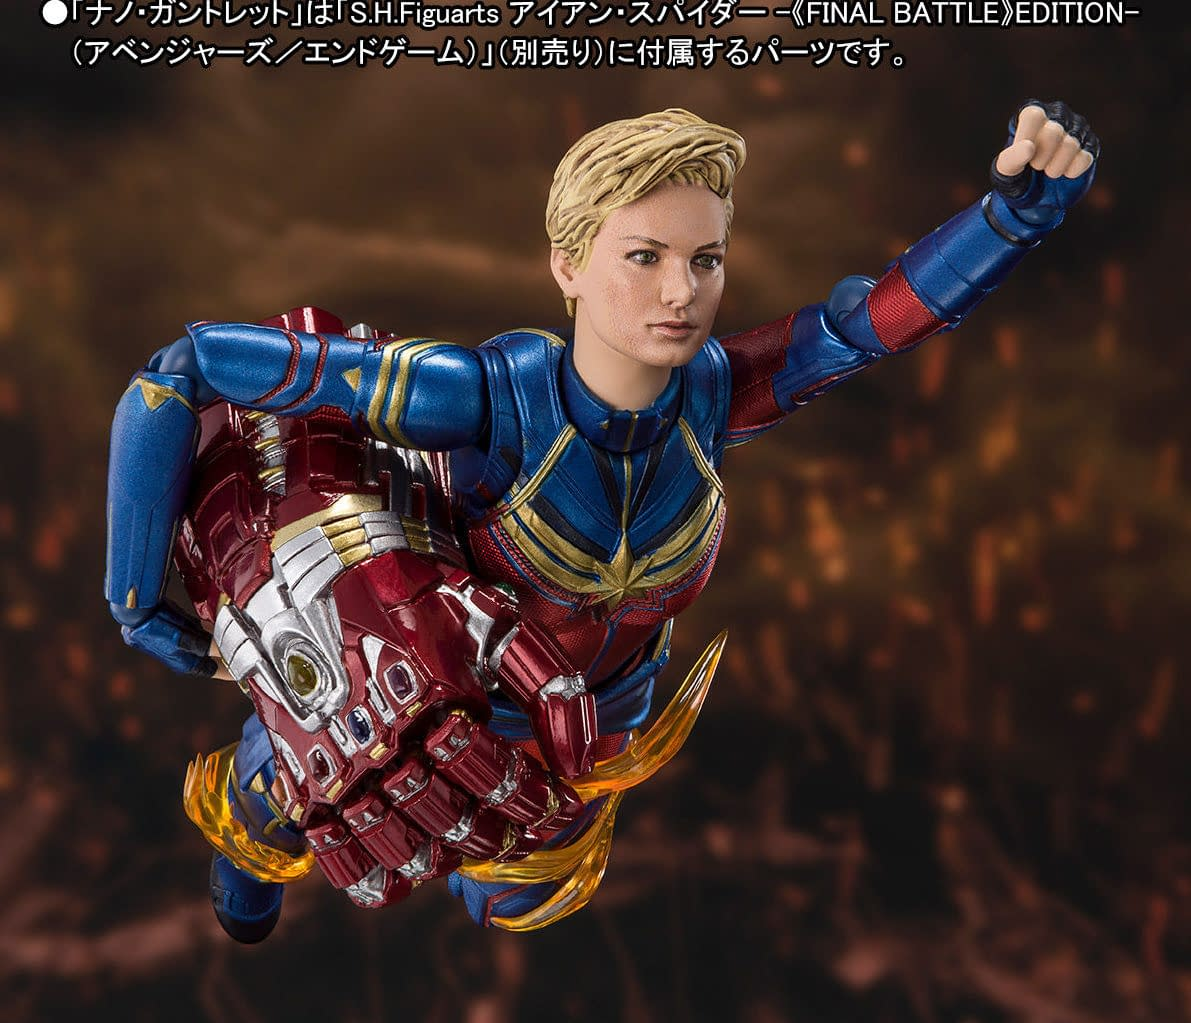 Captain Marvel Flies on in with the New S.H. Figuarts Figure.